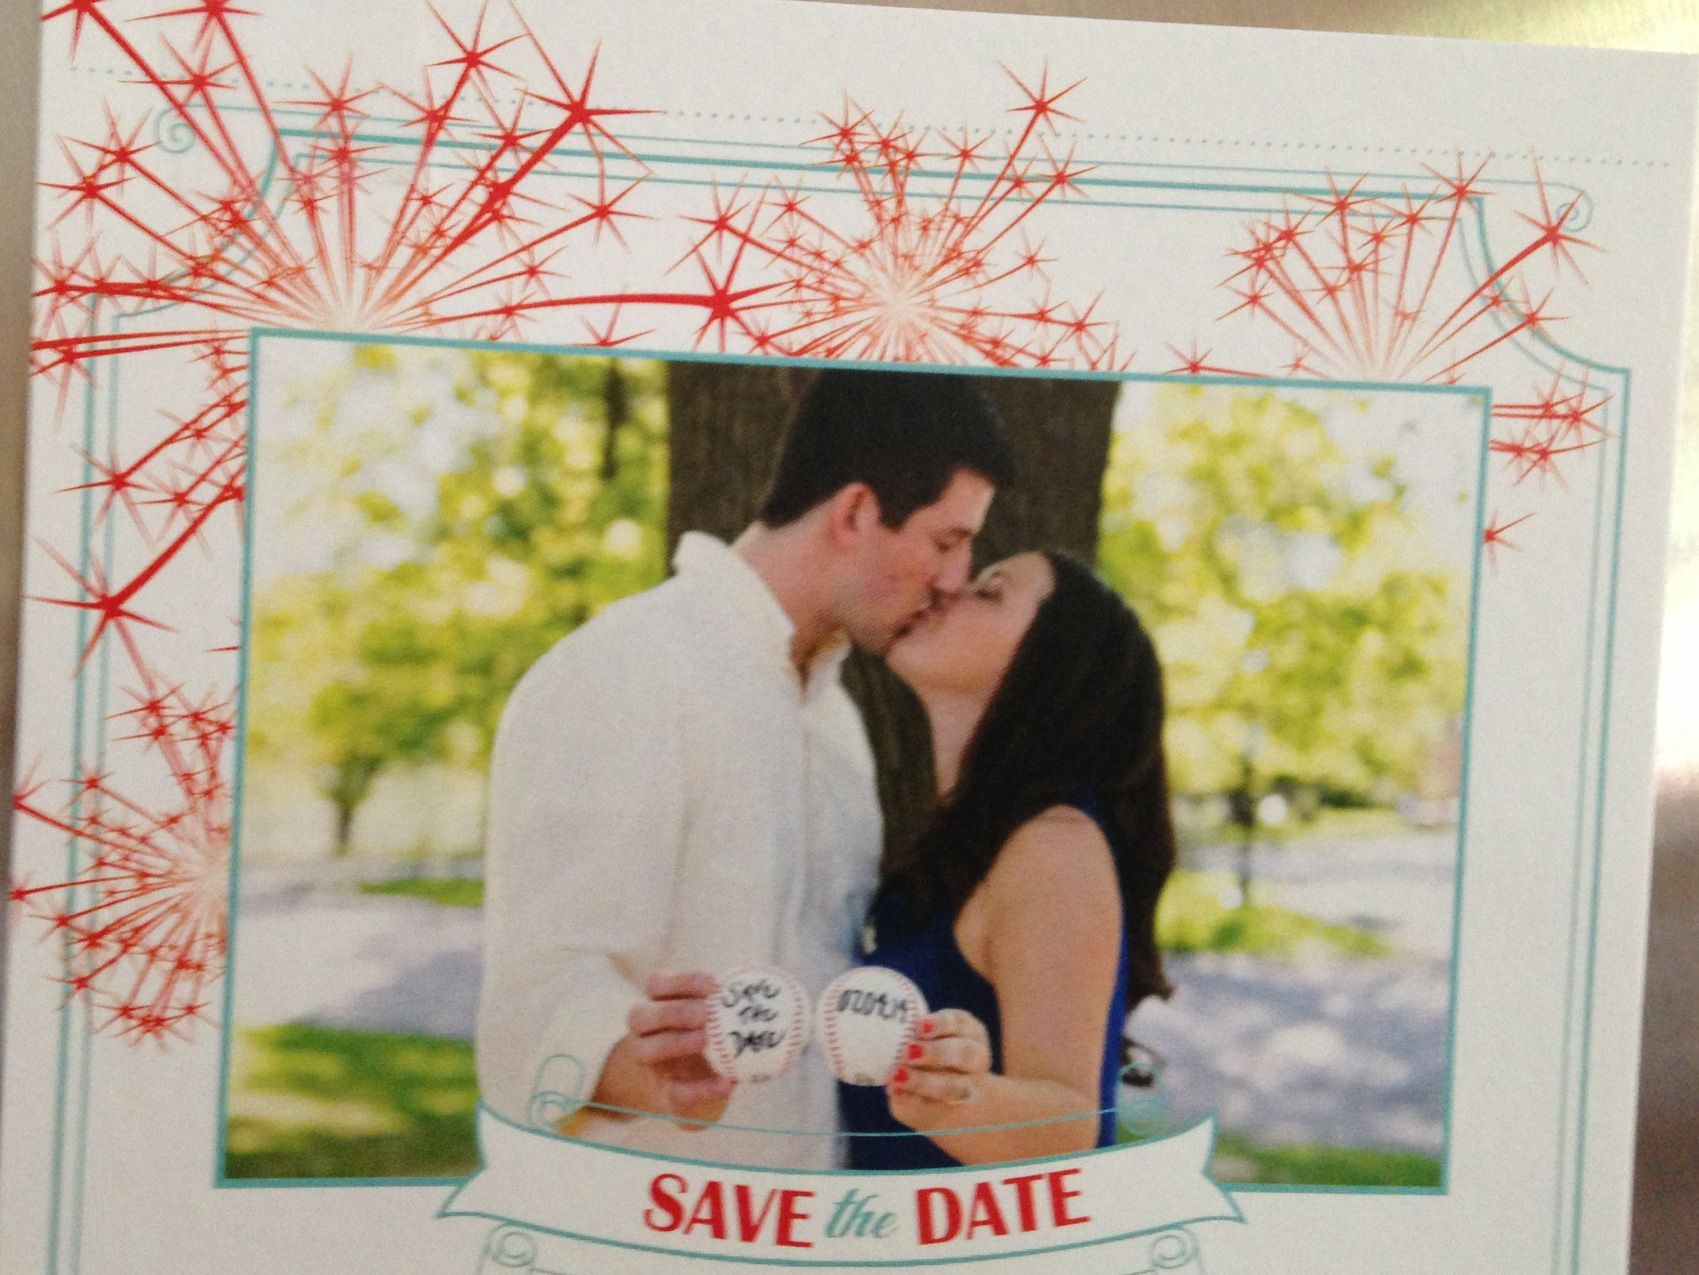 4th of july engagement party ideas